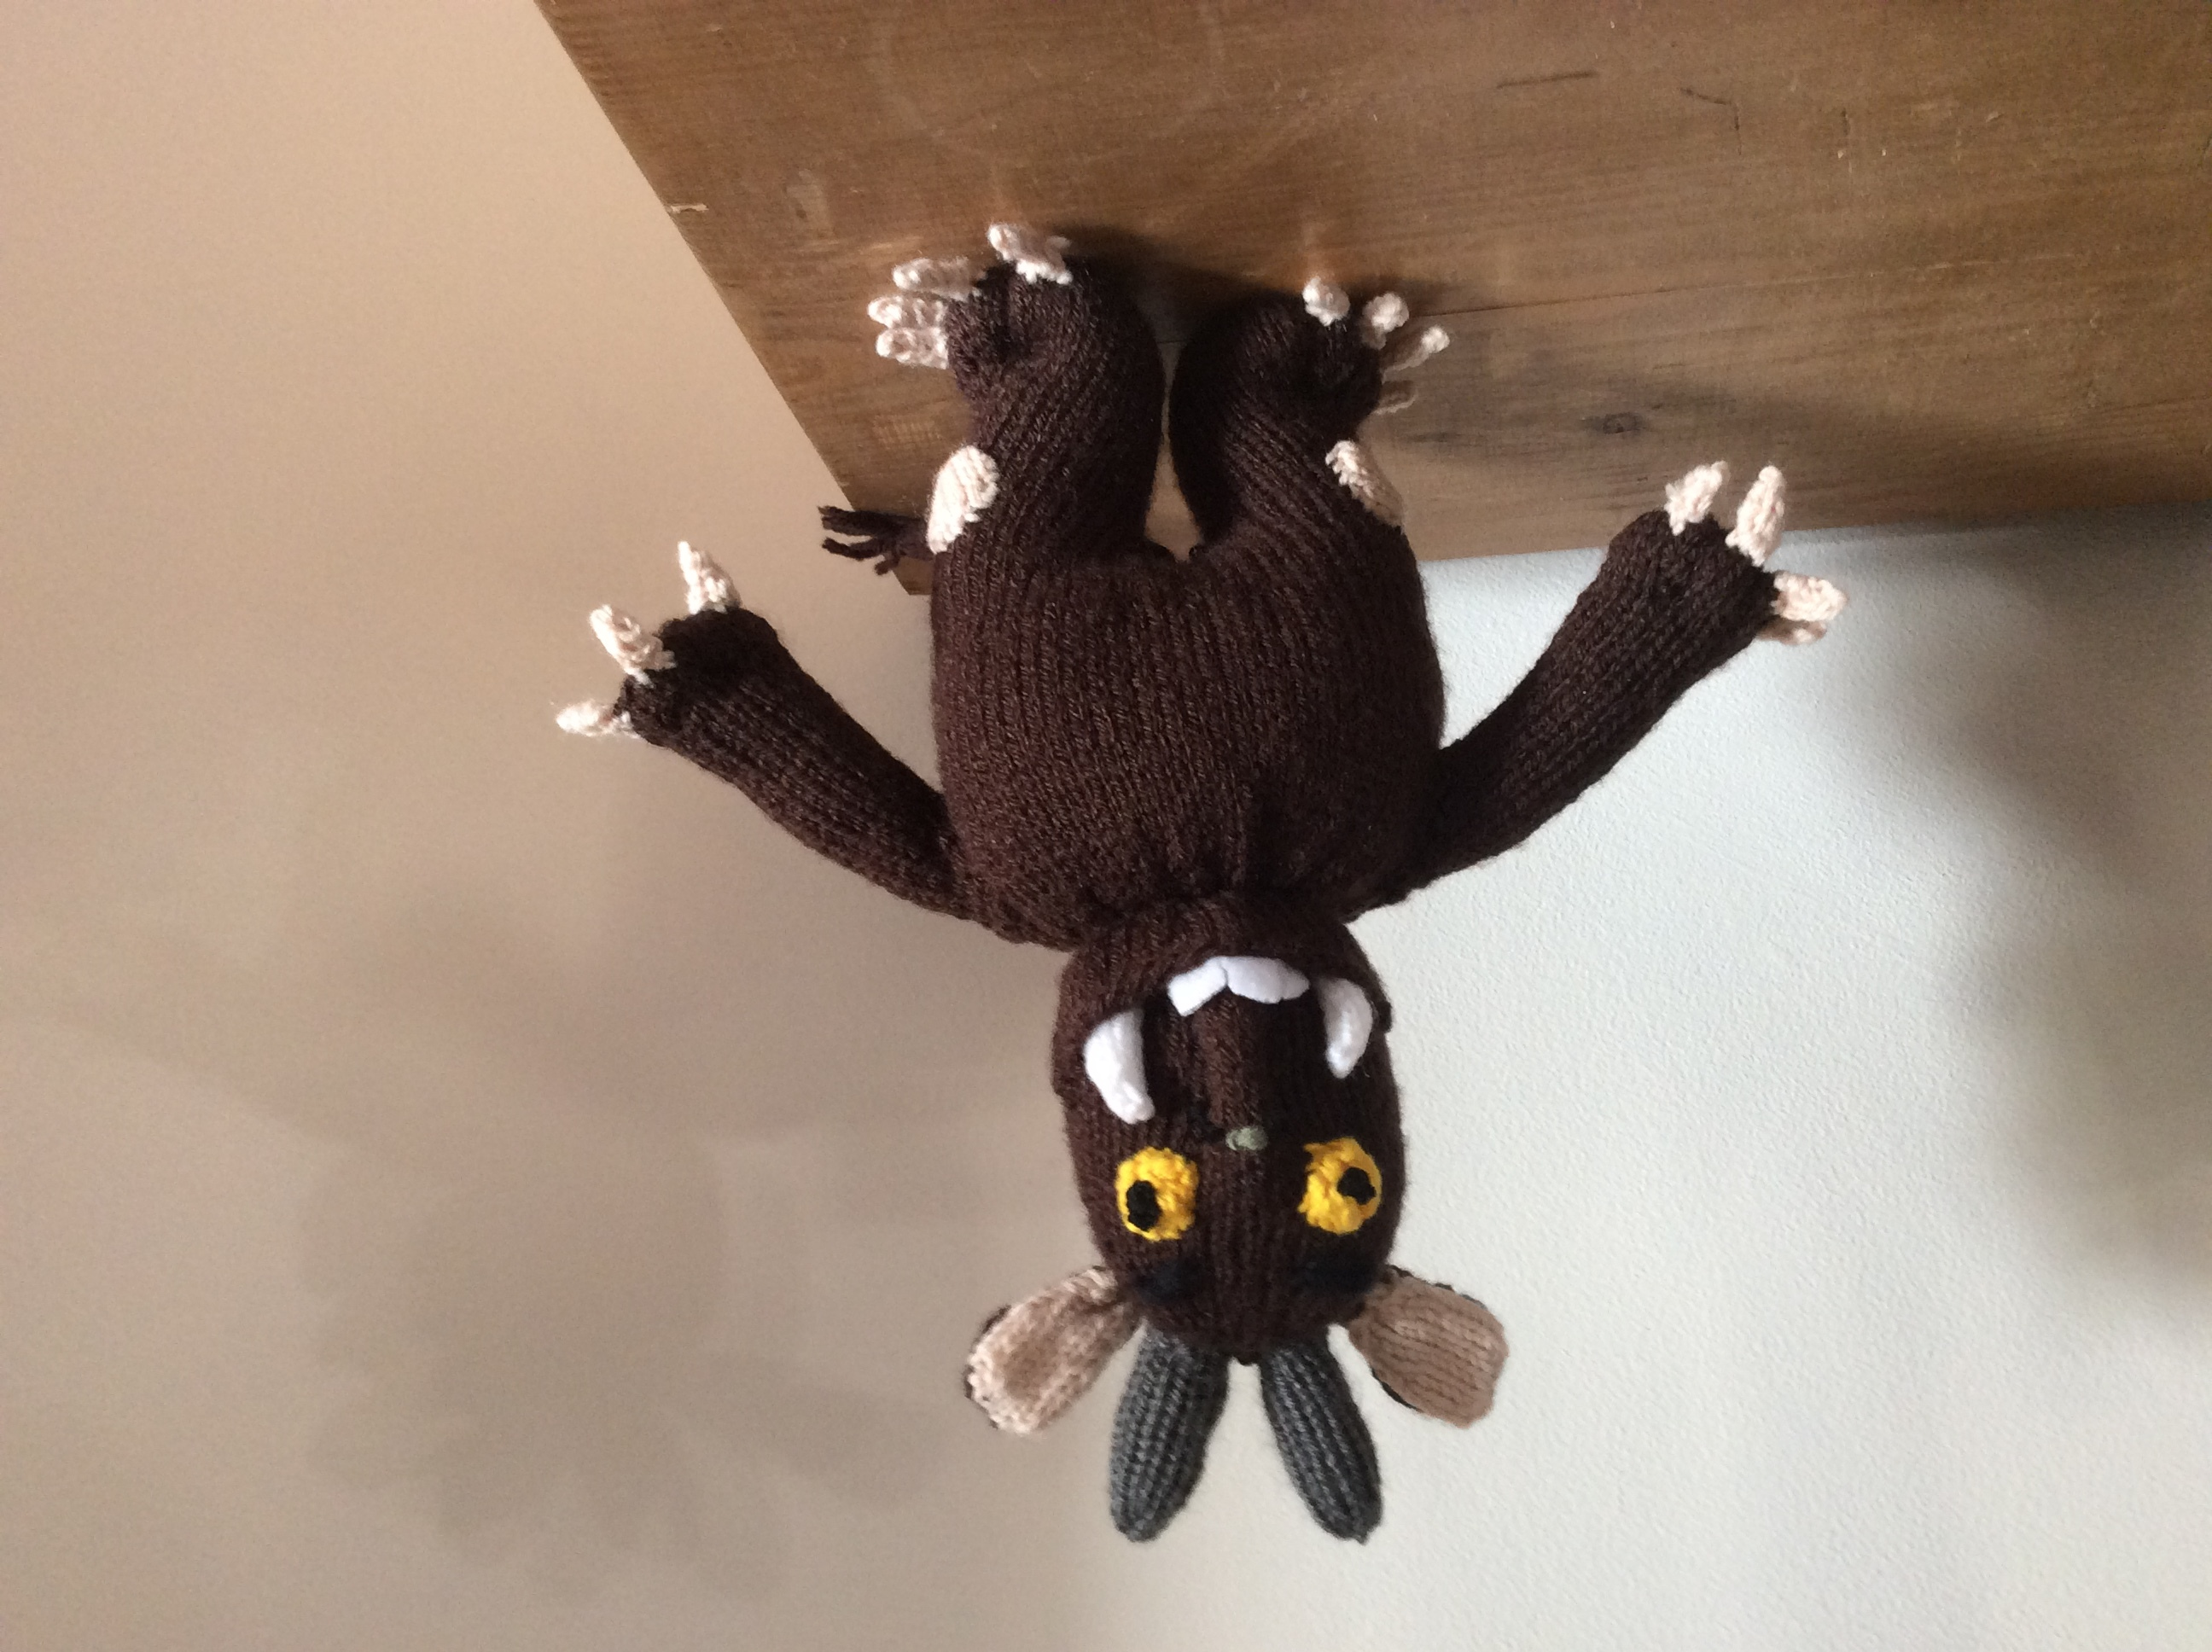 Knitting Pattern For Gruffalo Jumper : Georges Gruffalo knitting project by Sally M LoveKnitting